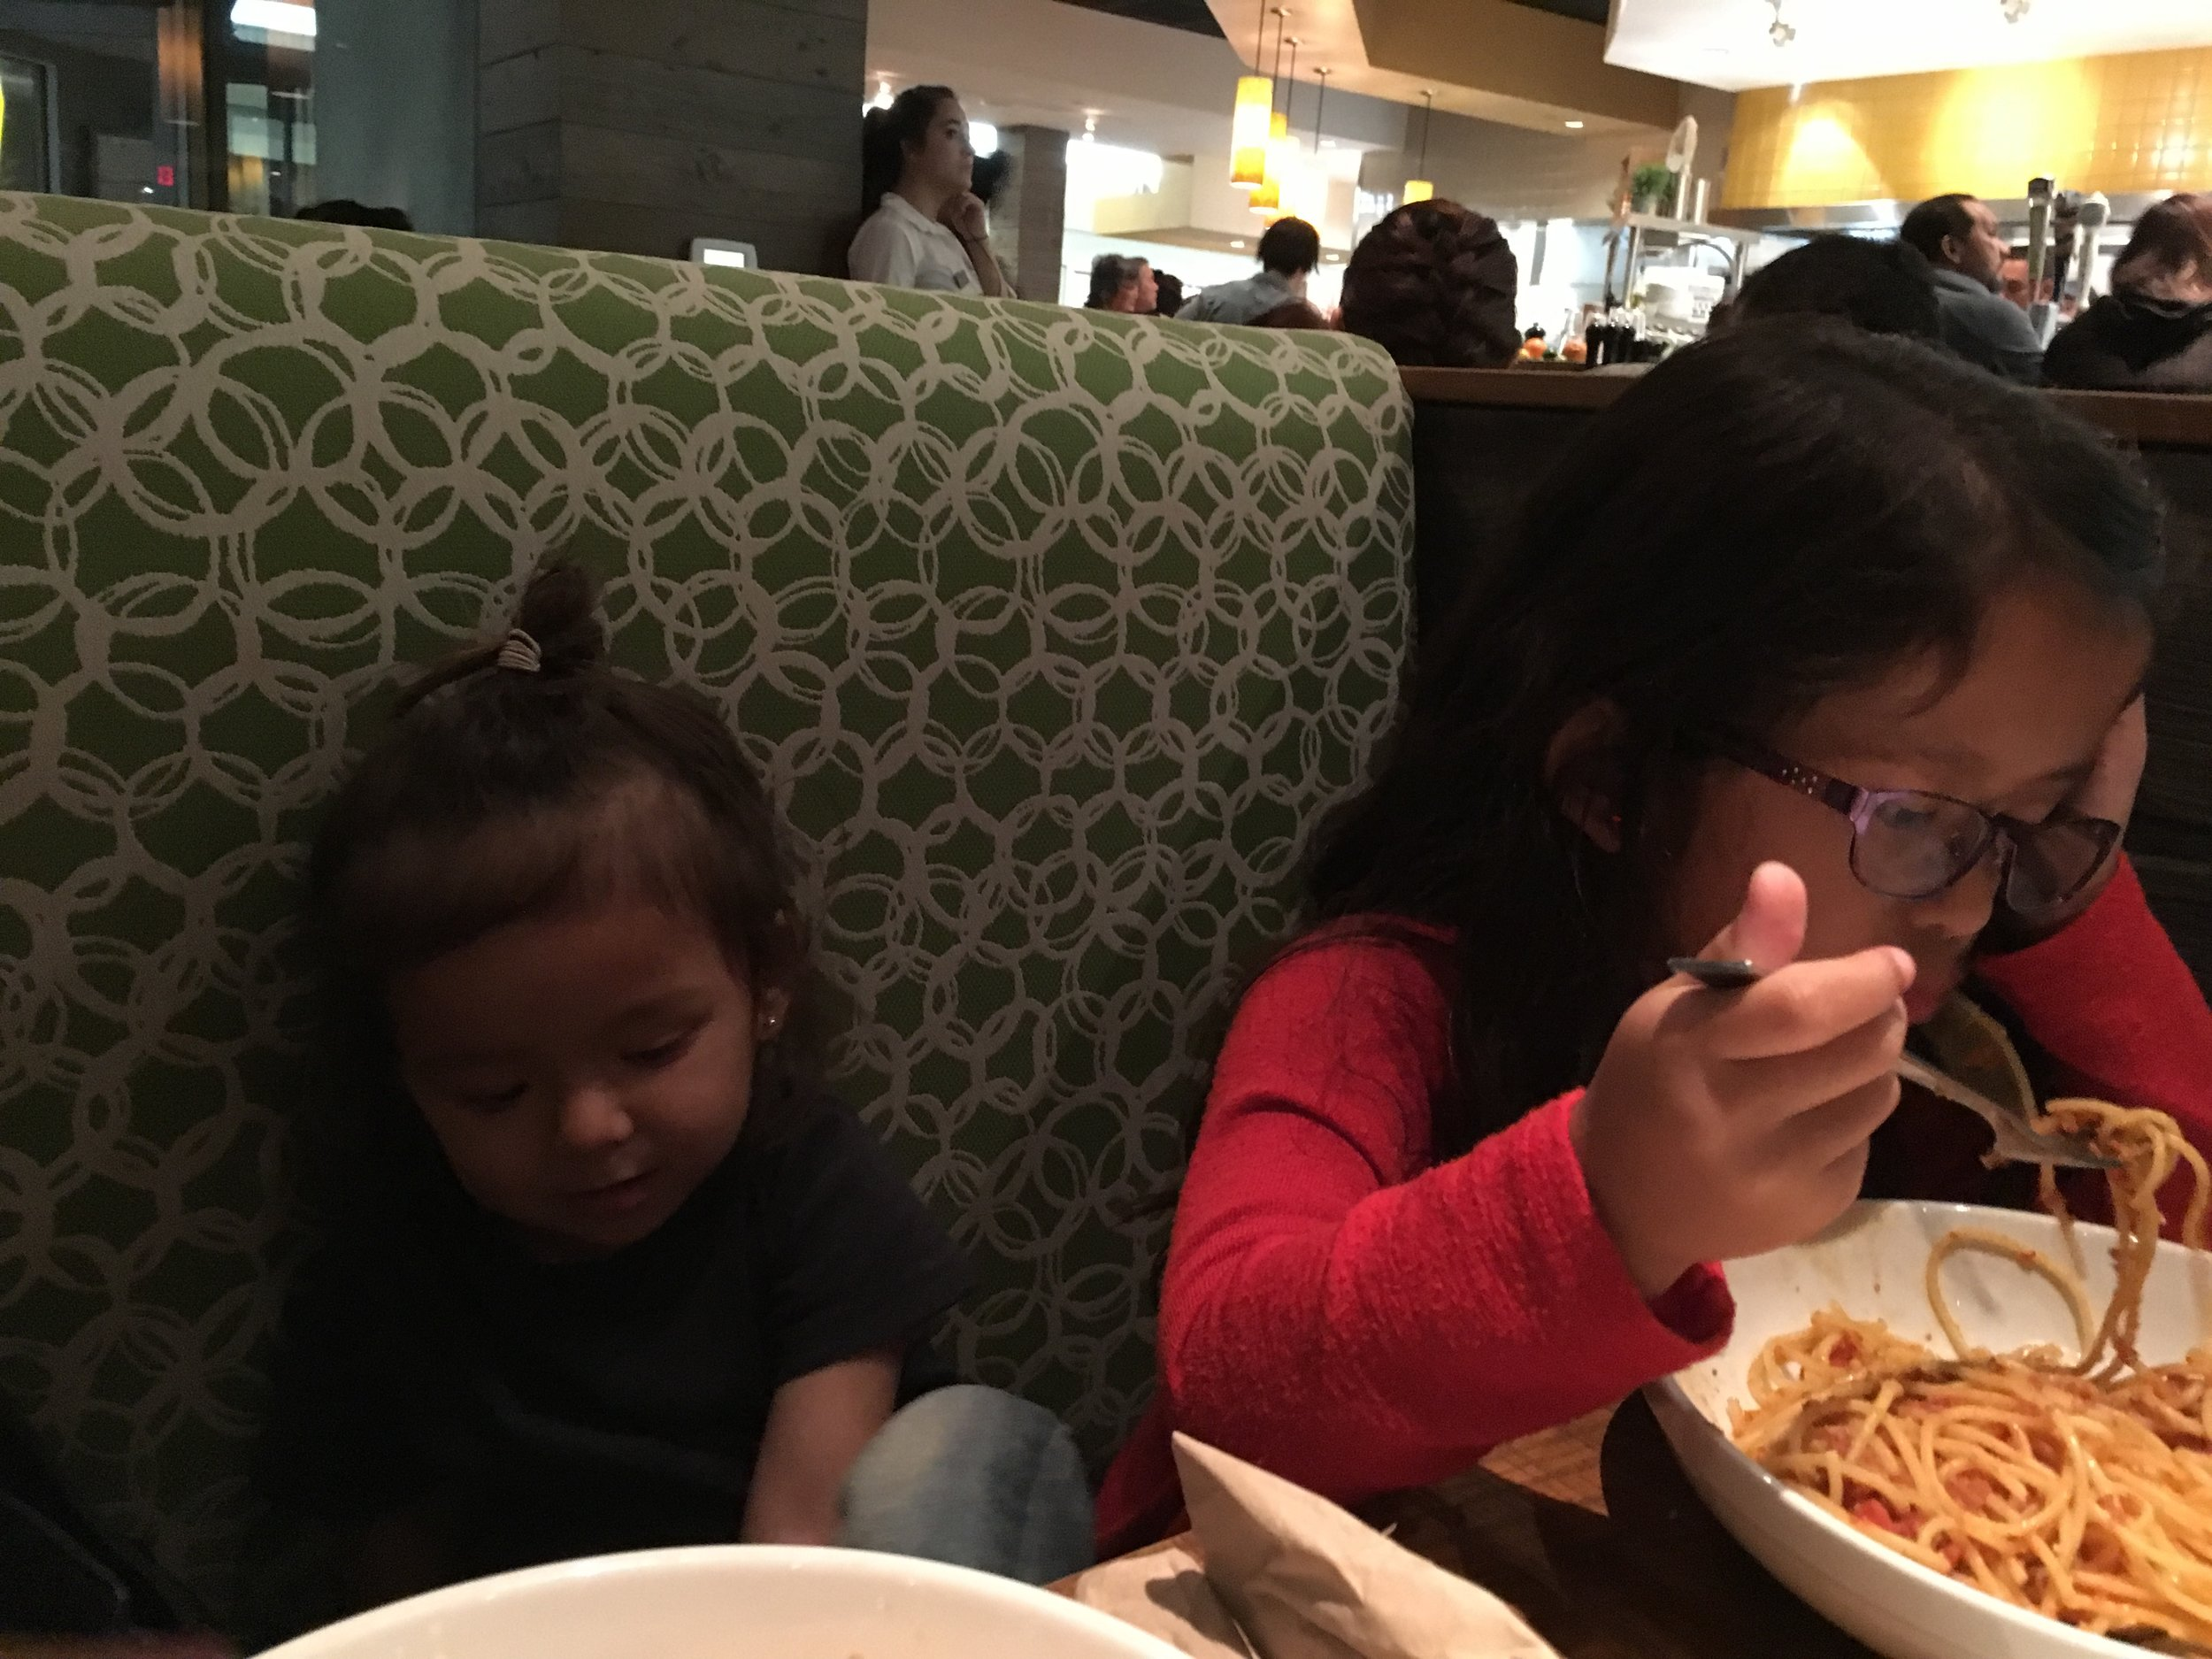 Quality time dinner.